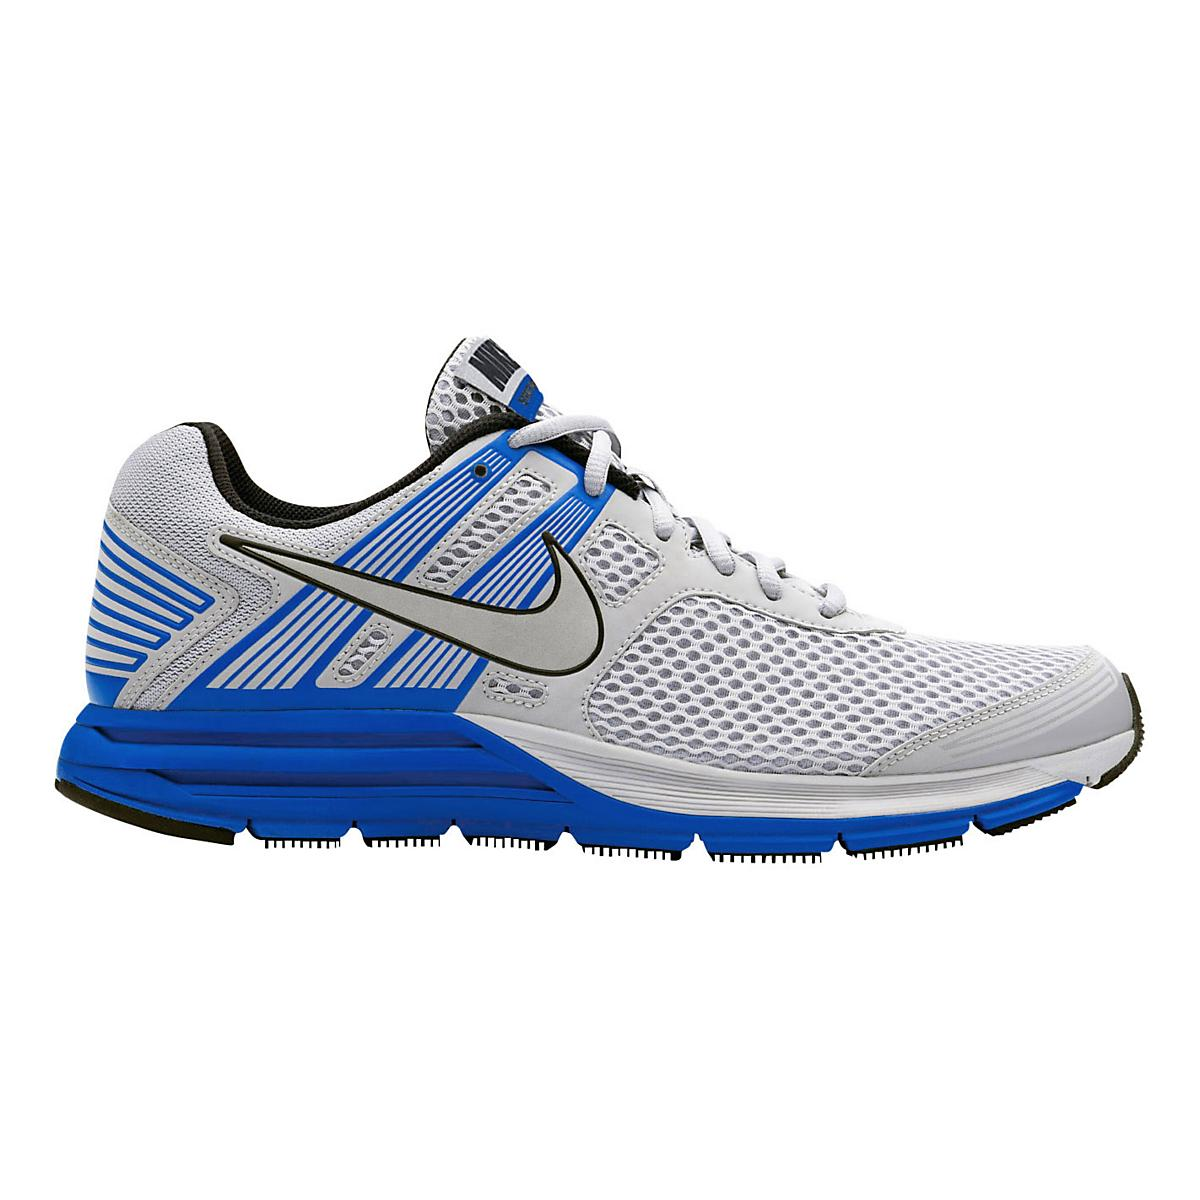 900c96162373c Mens Nike Zoom Structure+ 16 Running Shoe at Road Runner Sports